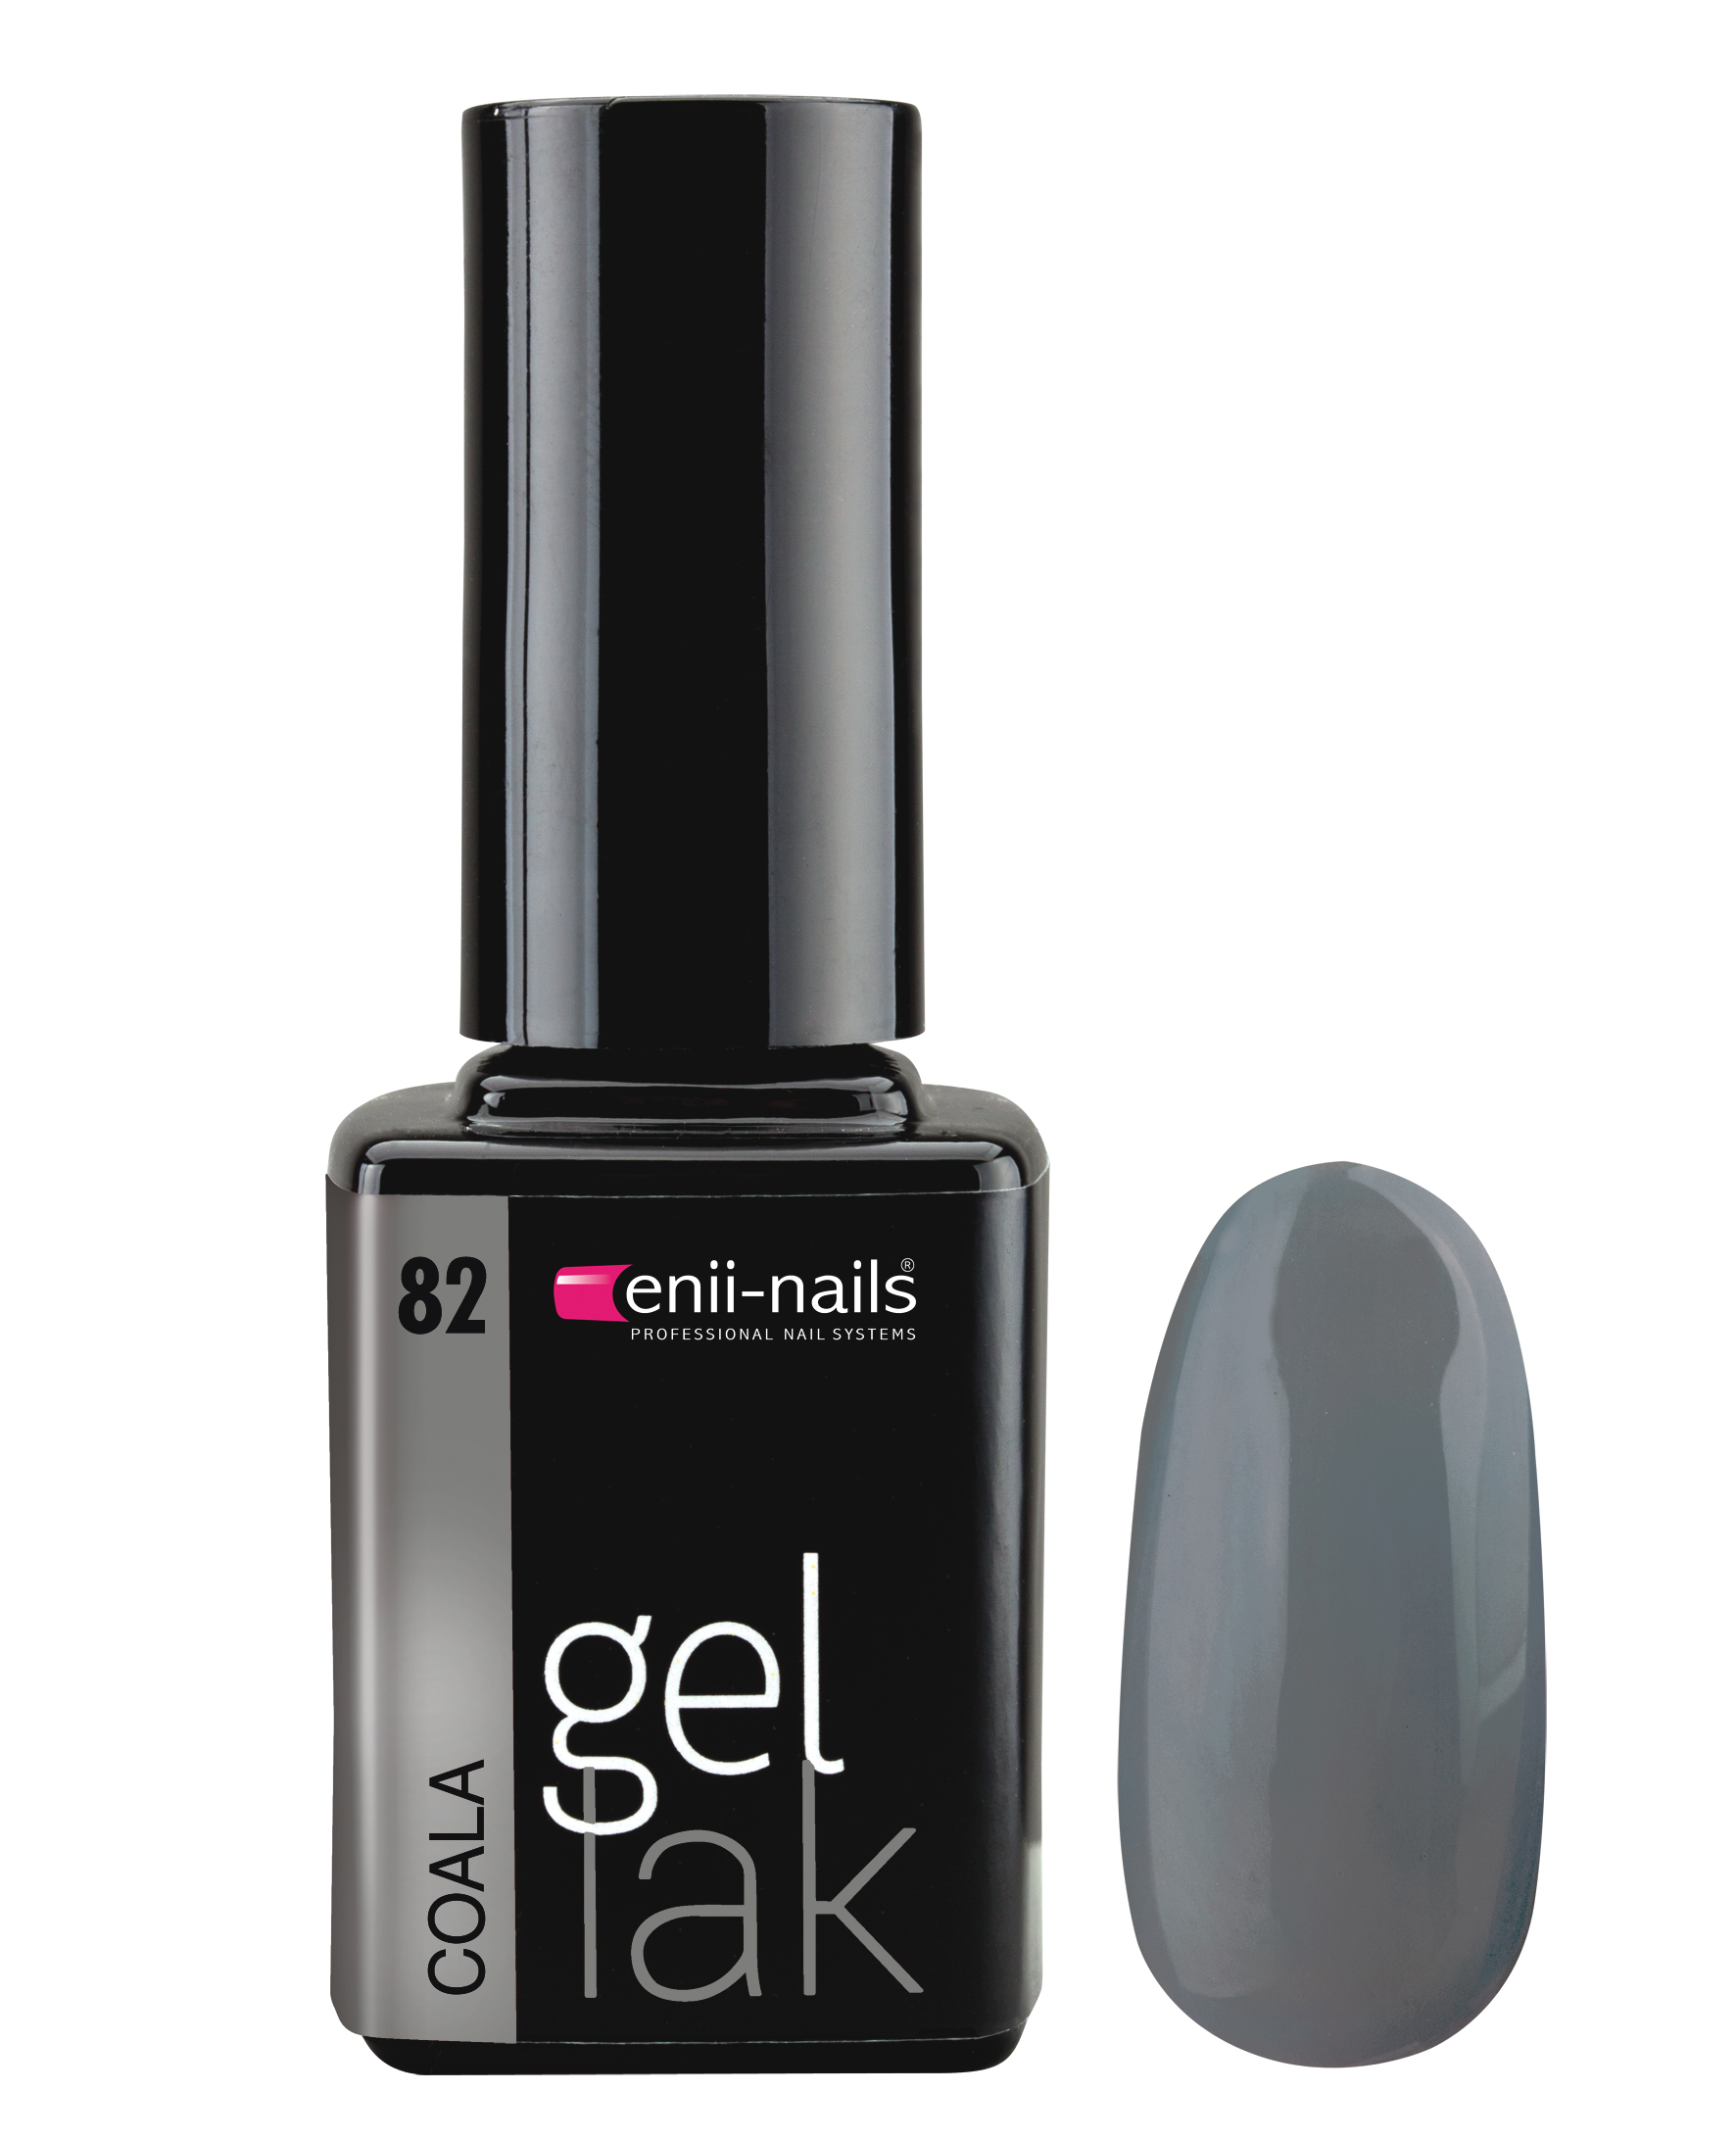 ENII-NAILS Gel lak 11 ml - Coala